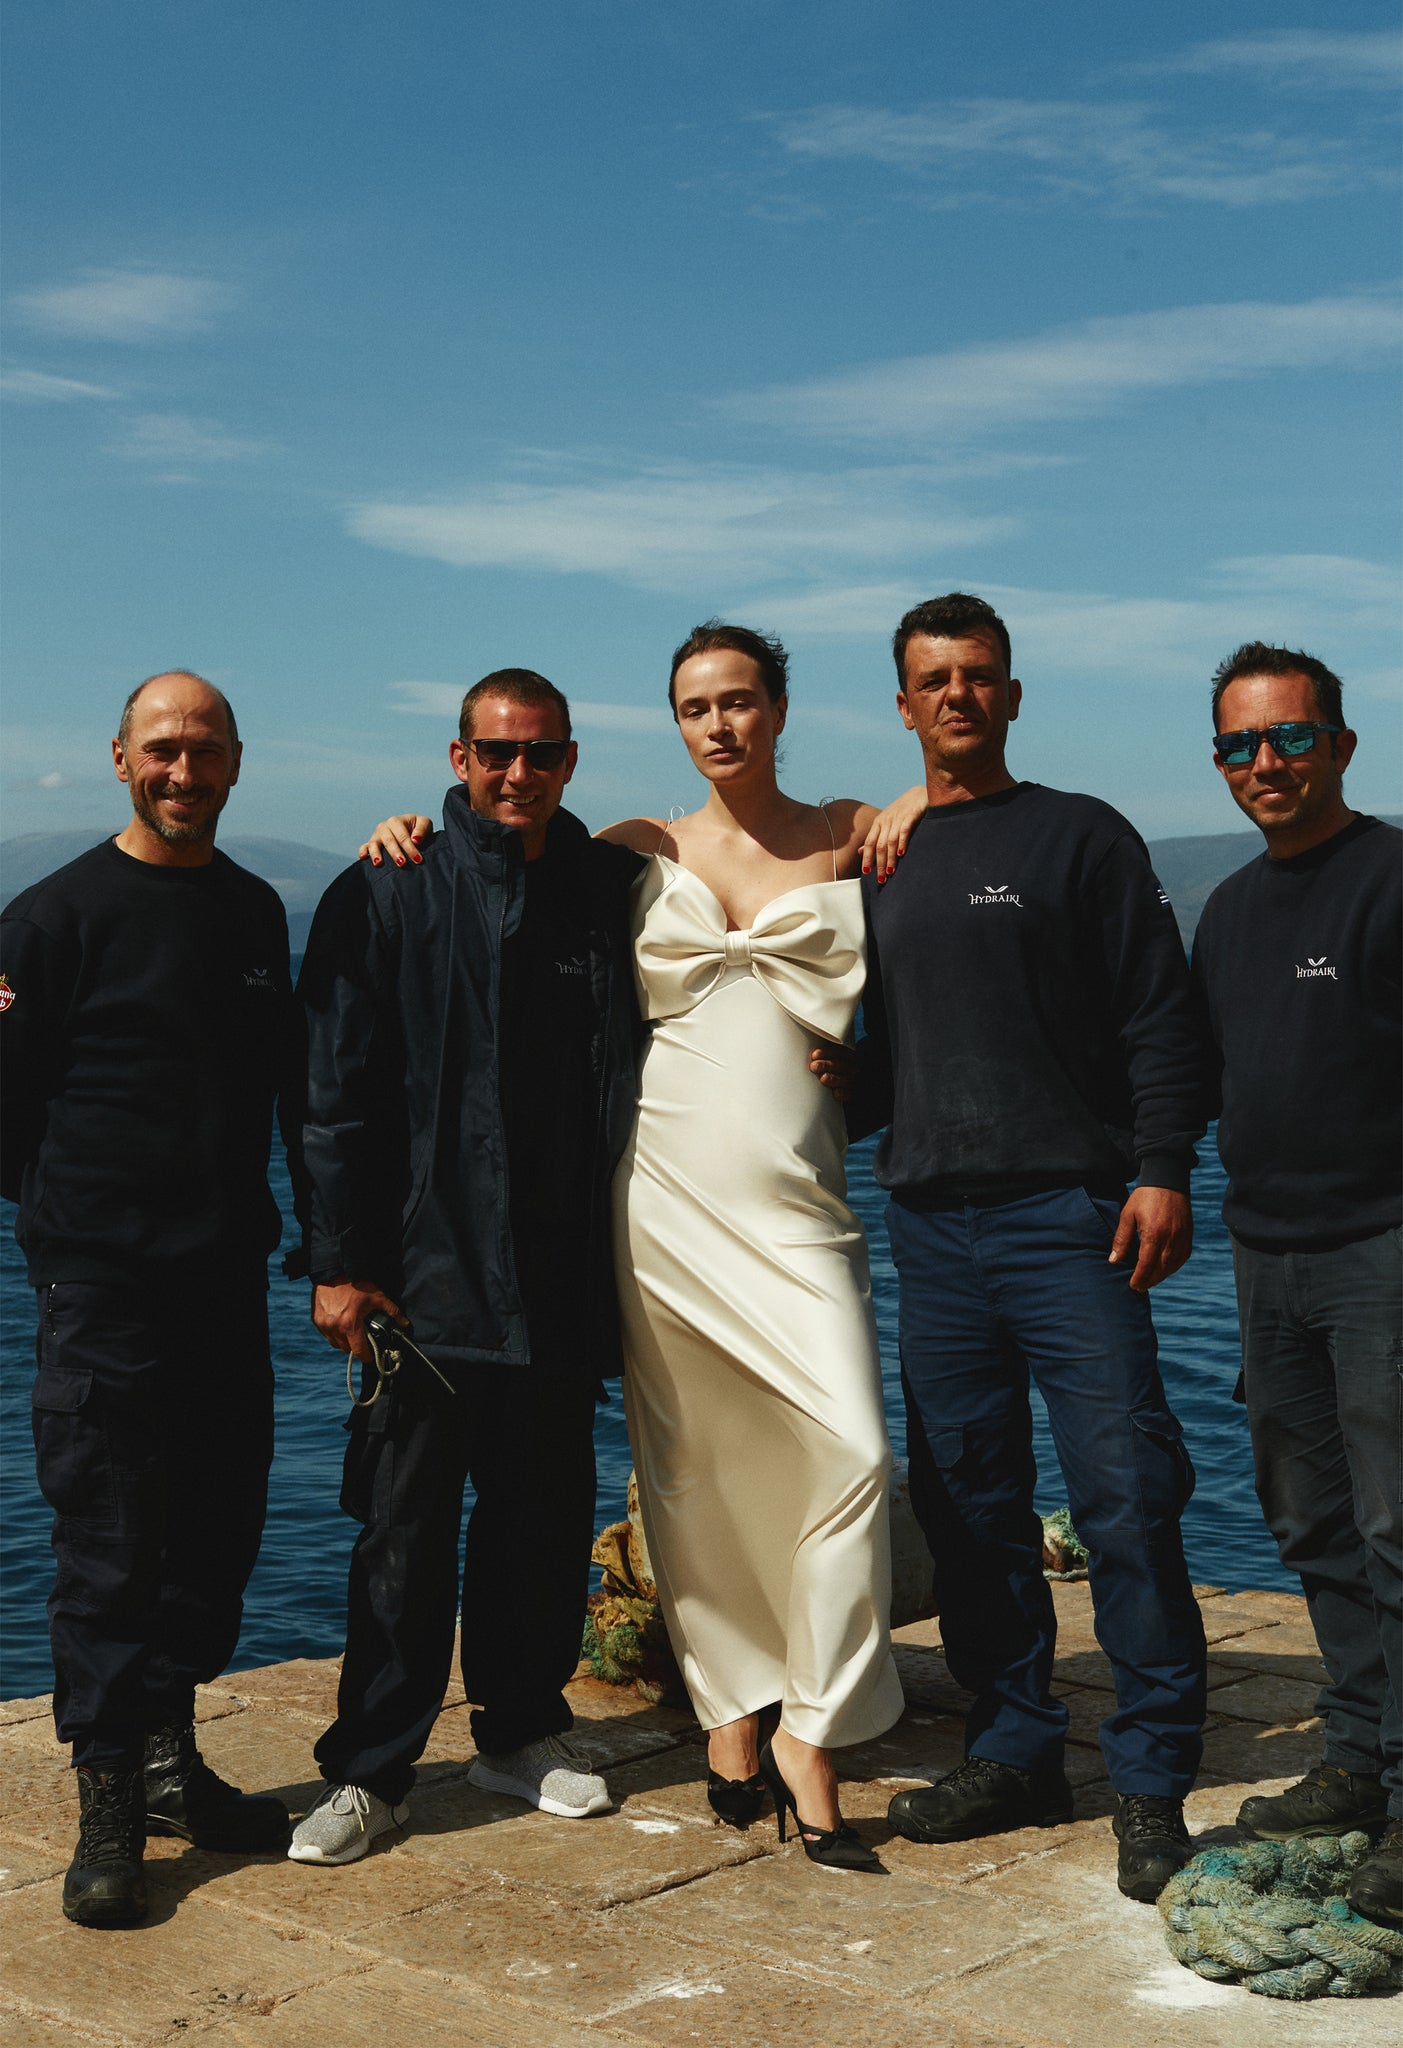 Model in Gala goes to ball dress in Hydra